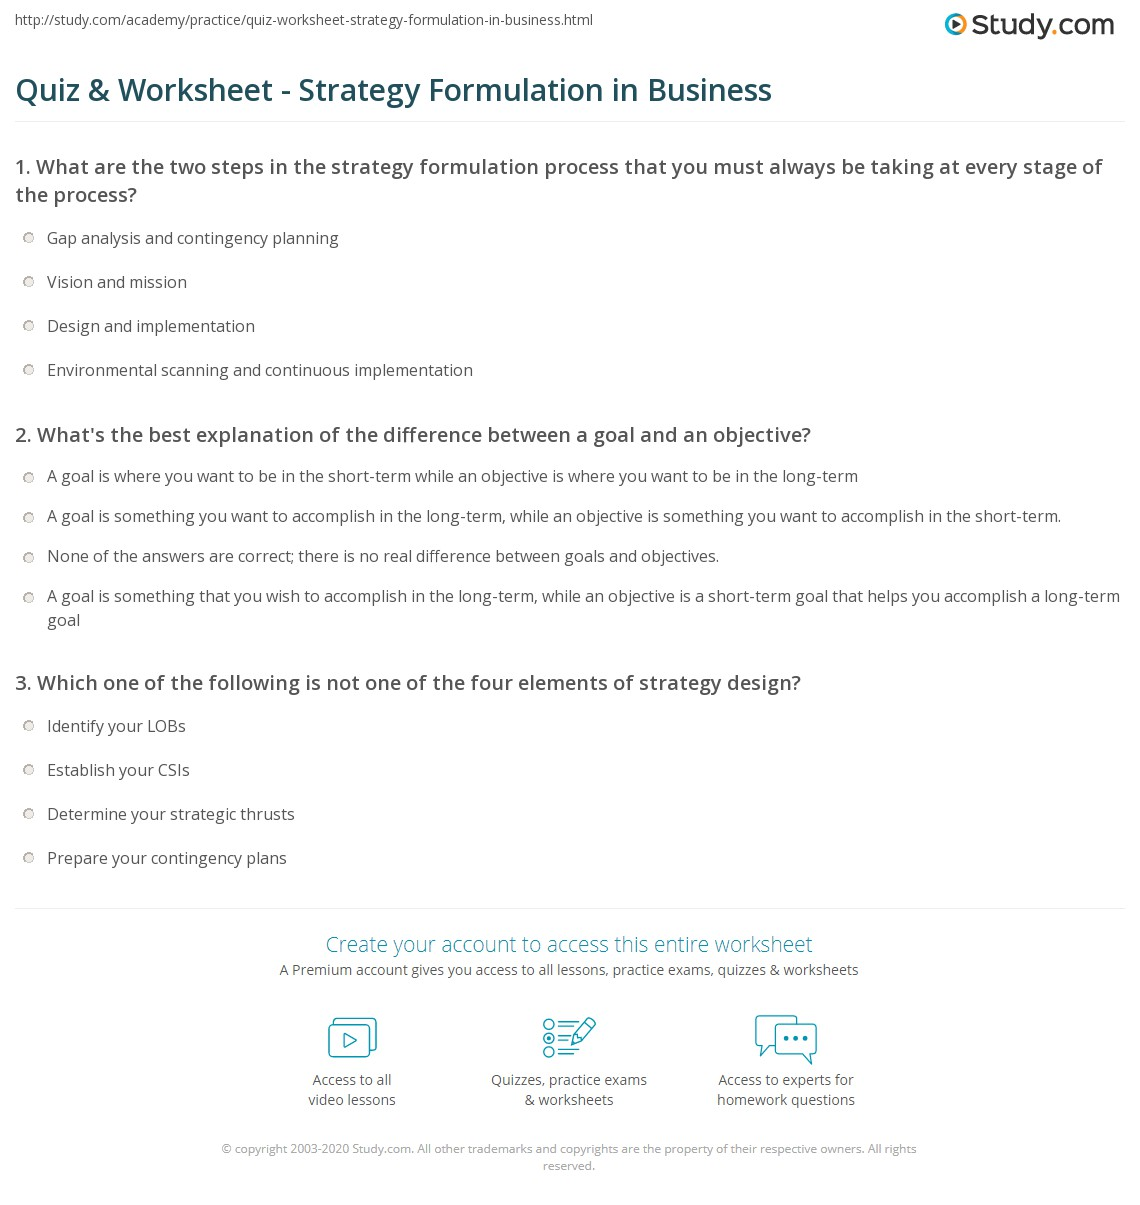 quiz & worksheet - strategy formulation in business | study